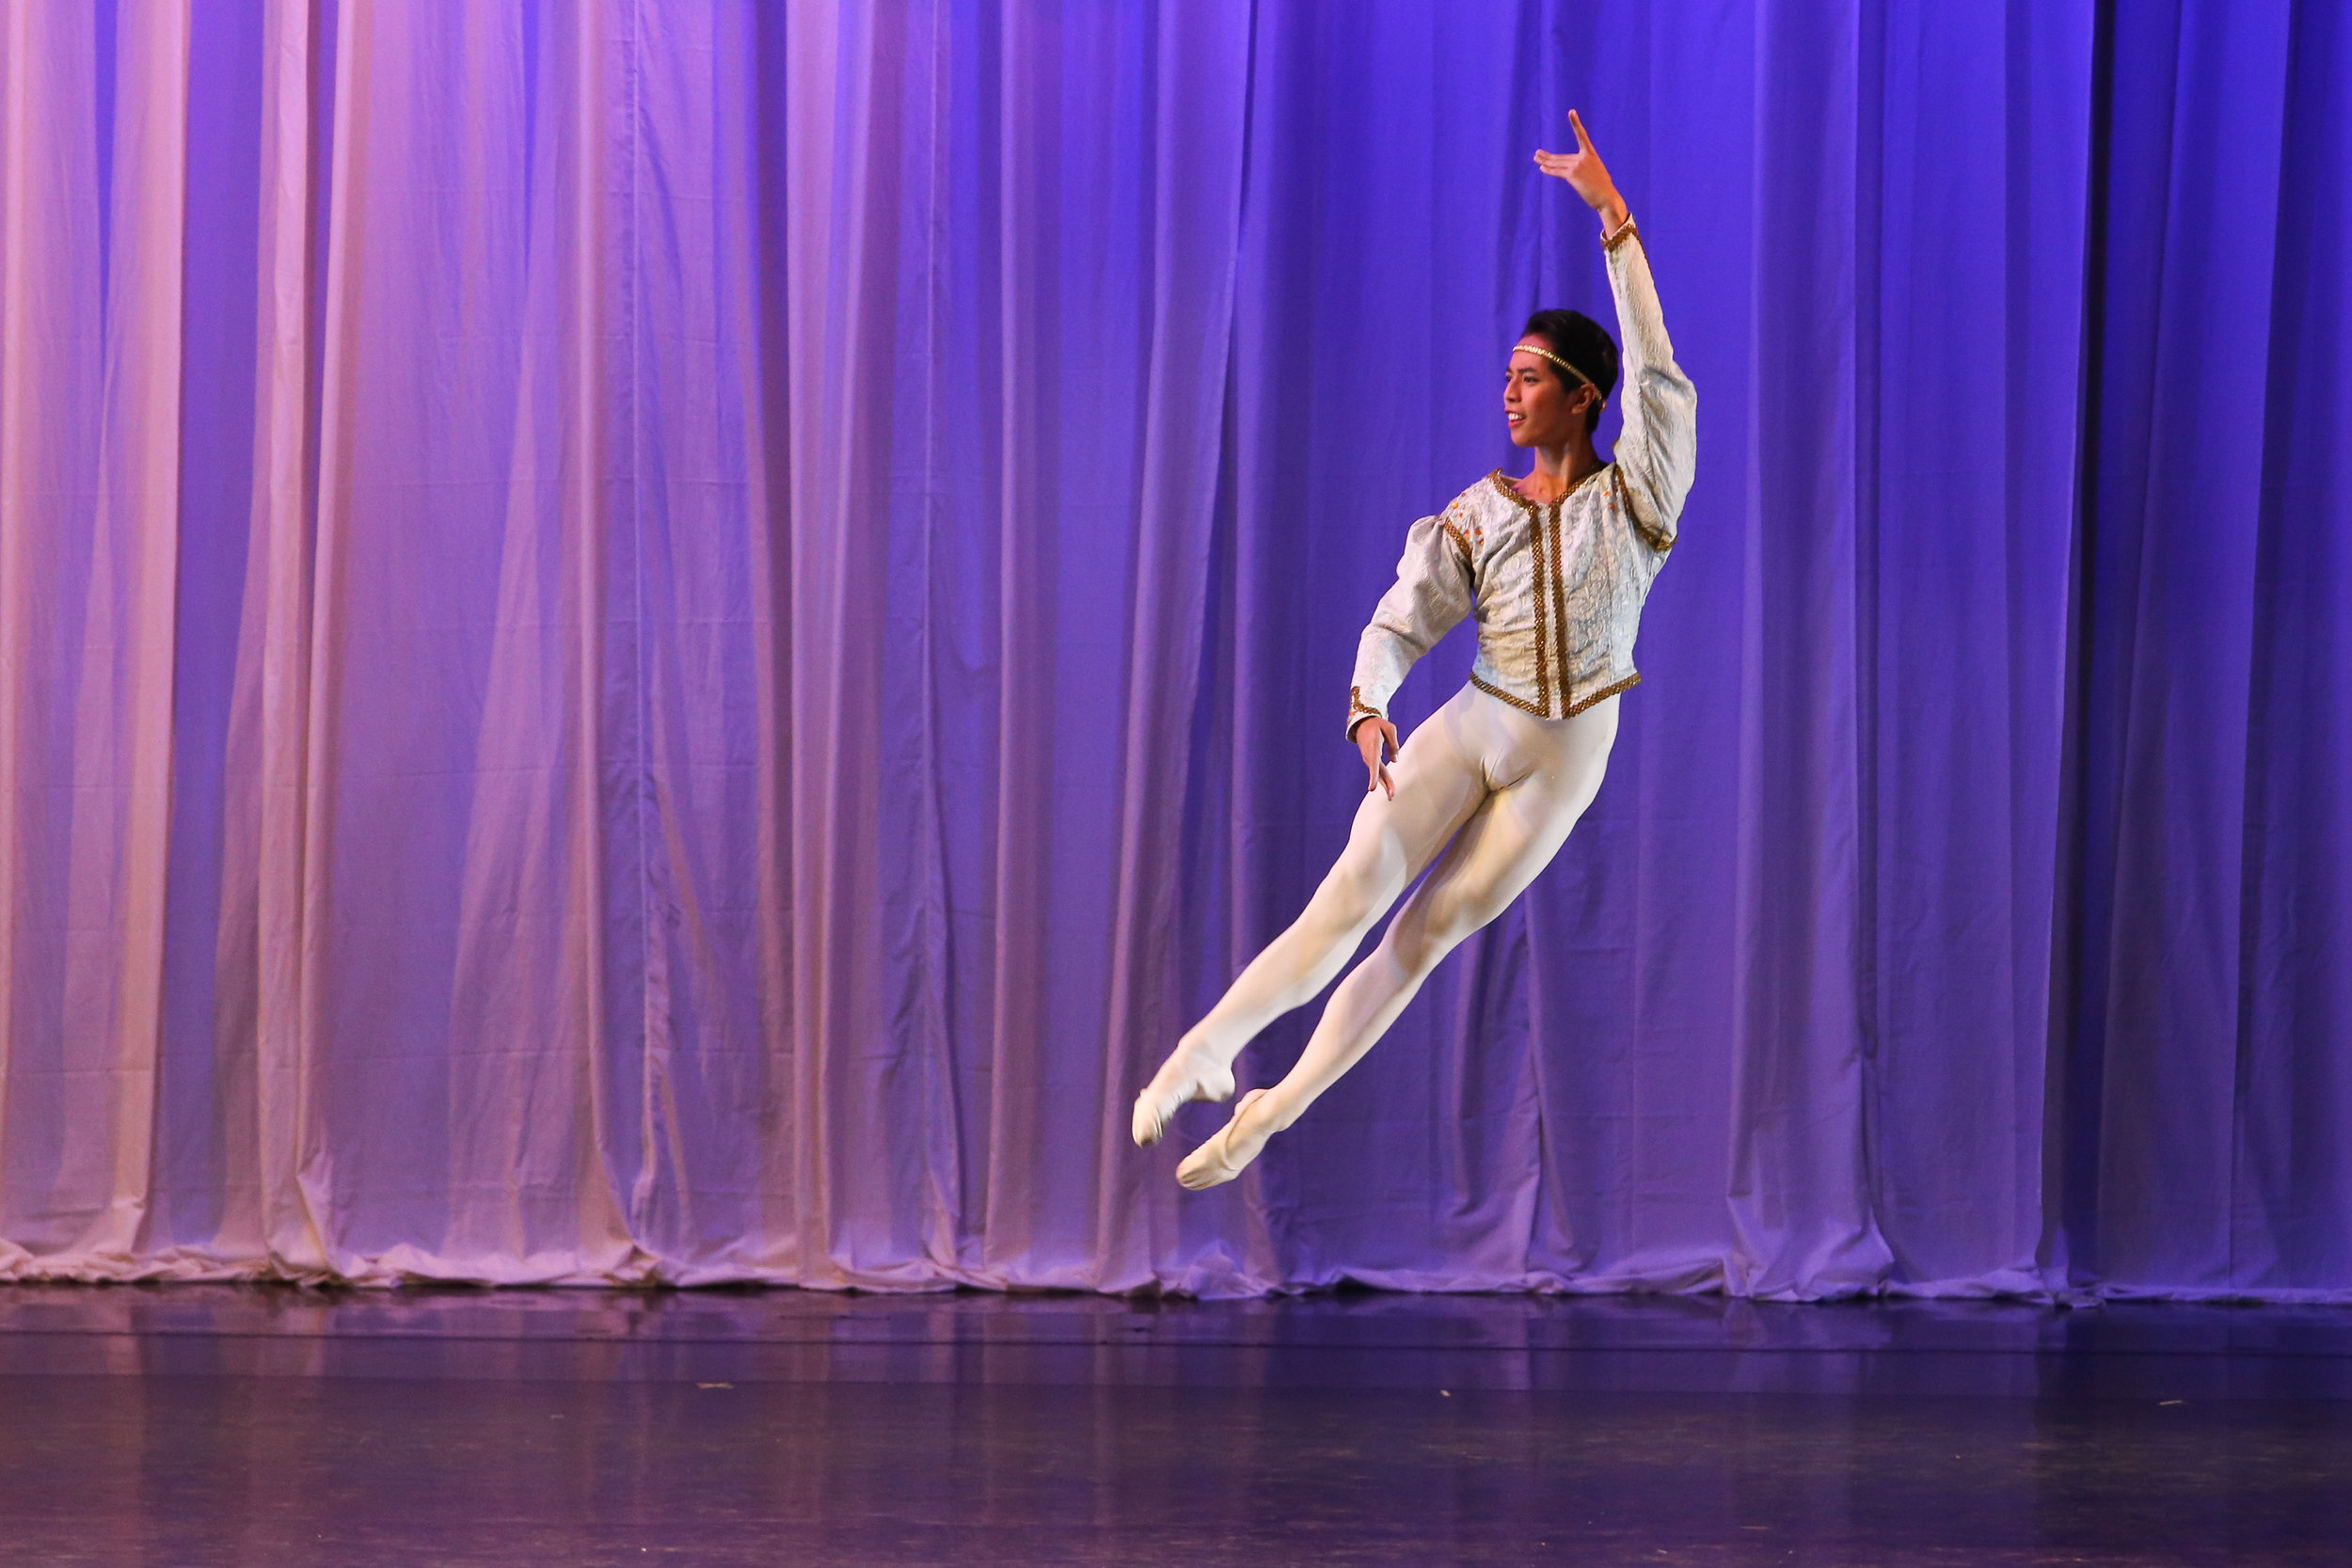 Rodney Catubay was a Tuloy Foundation scholar trained by Academy One who is now a company artist of Ballet Manila. Photo by Ian Santos